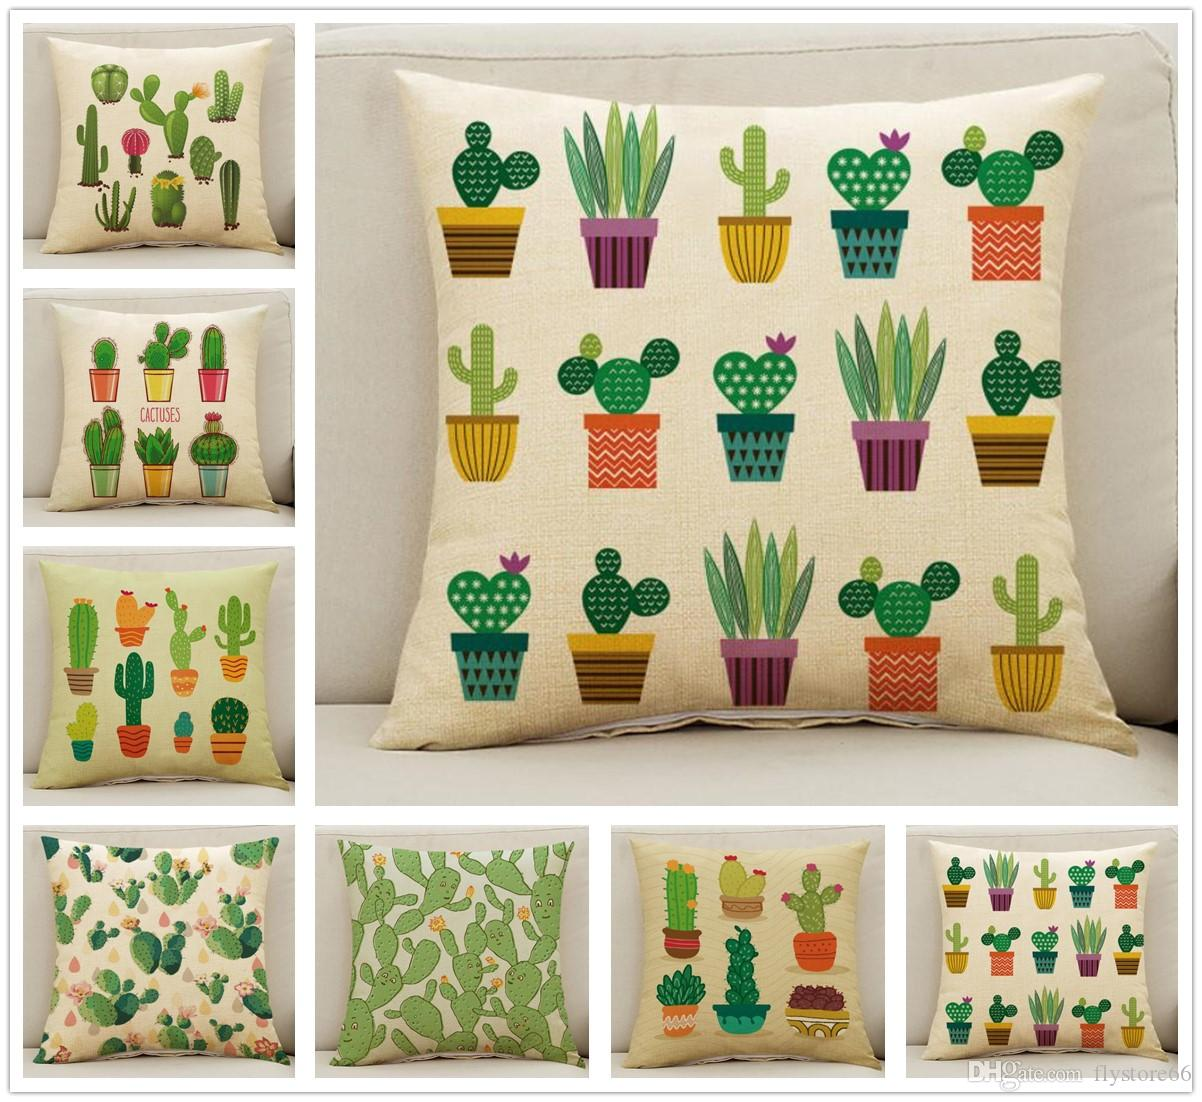 658694a289 New Cute Cactus Pot Pattern Pillow Case Cushion Cover Home Bed Decoration  Funny Gifts Striped Pillow Cases Silk Pillowcases For Sale From Flystore66,  ...